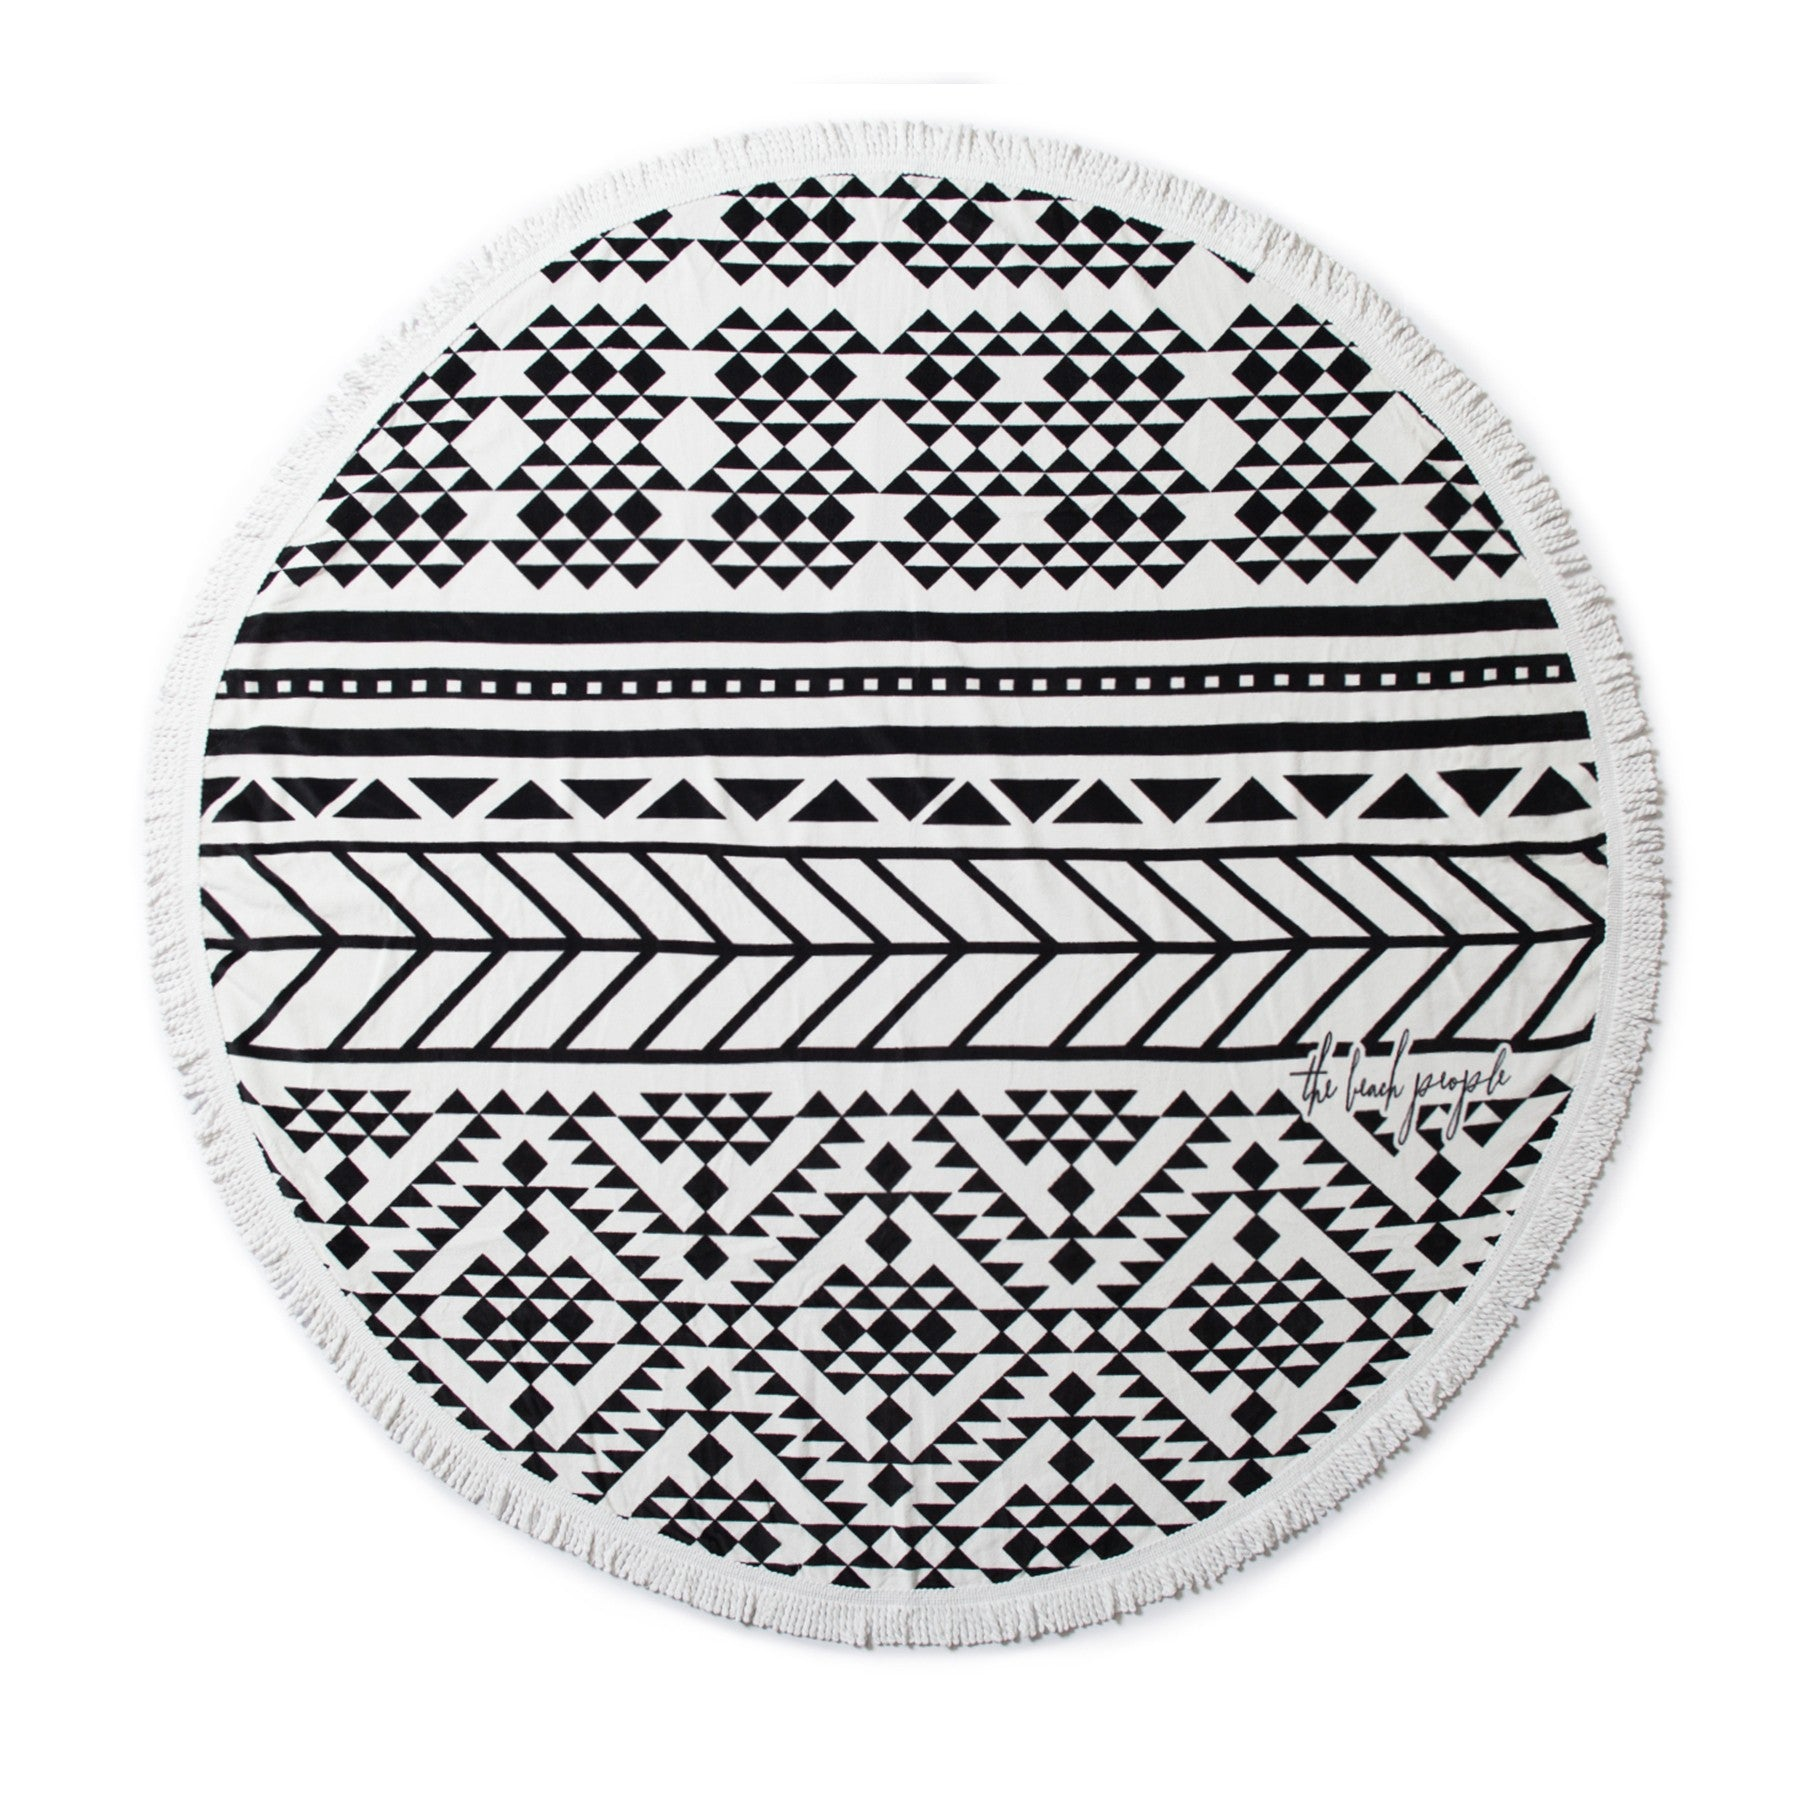 The Beach People Aztec towel black white